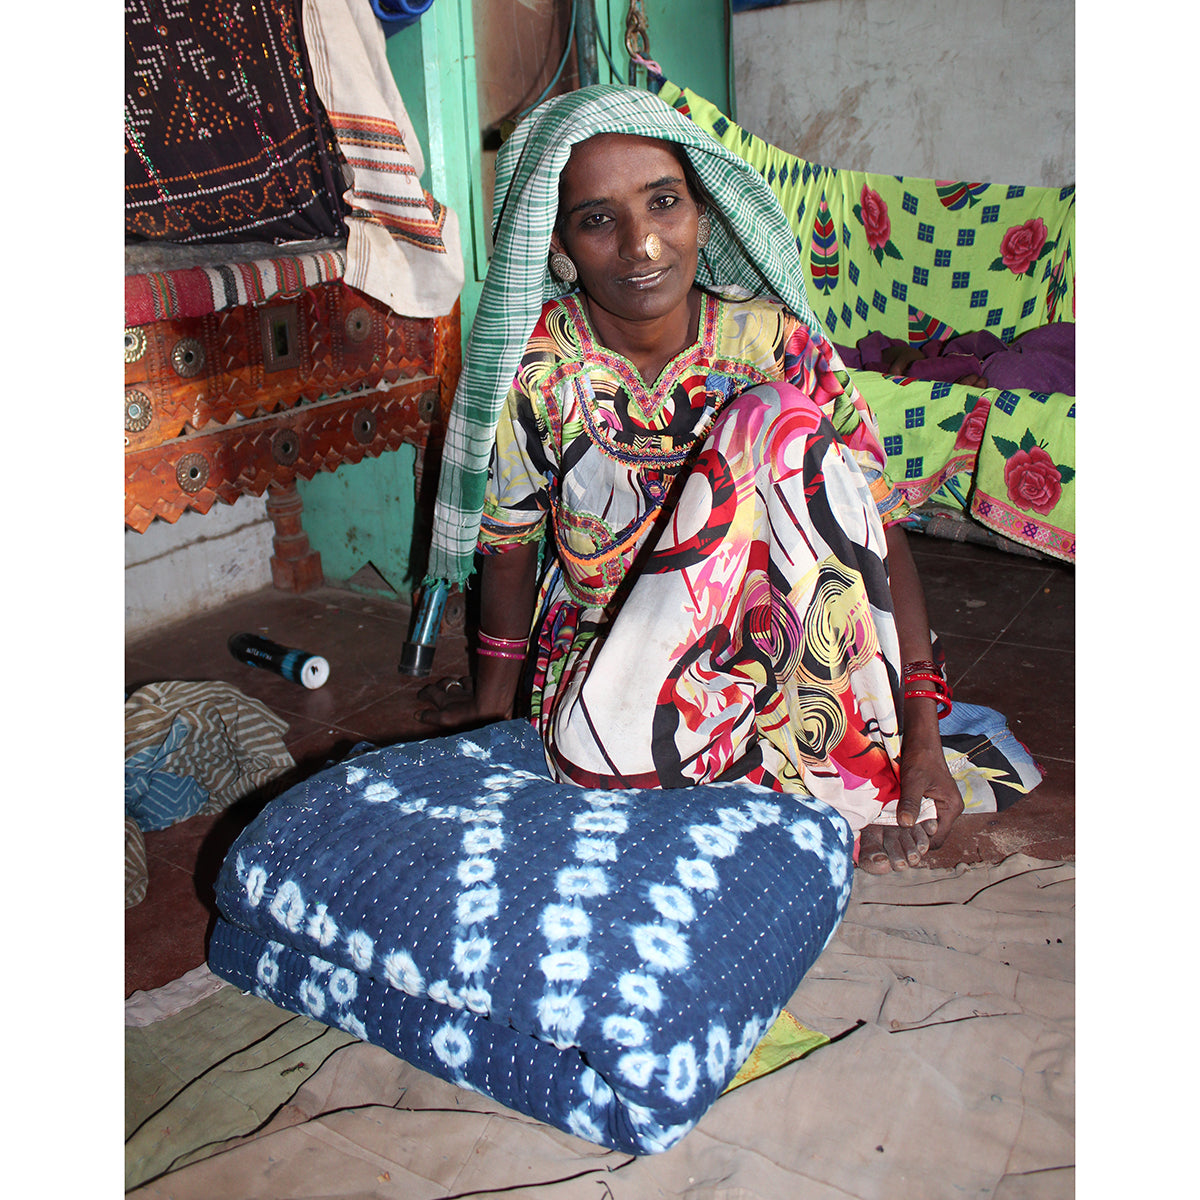 Indian women draped in colourful fabric wearing indigo dyed quilt over her lap